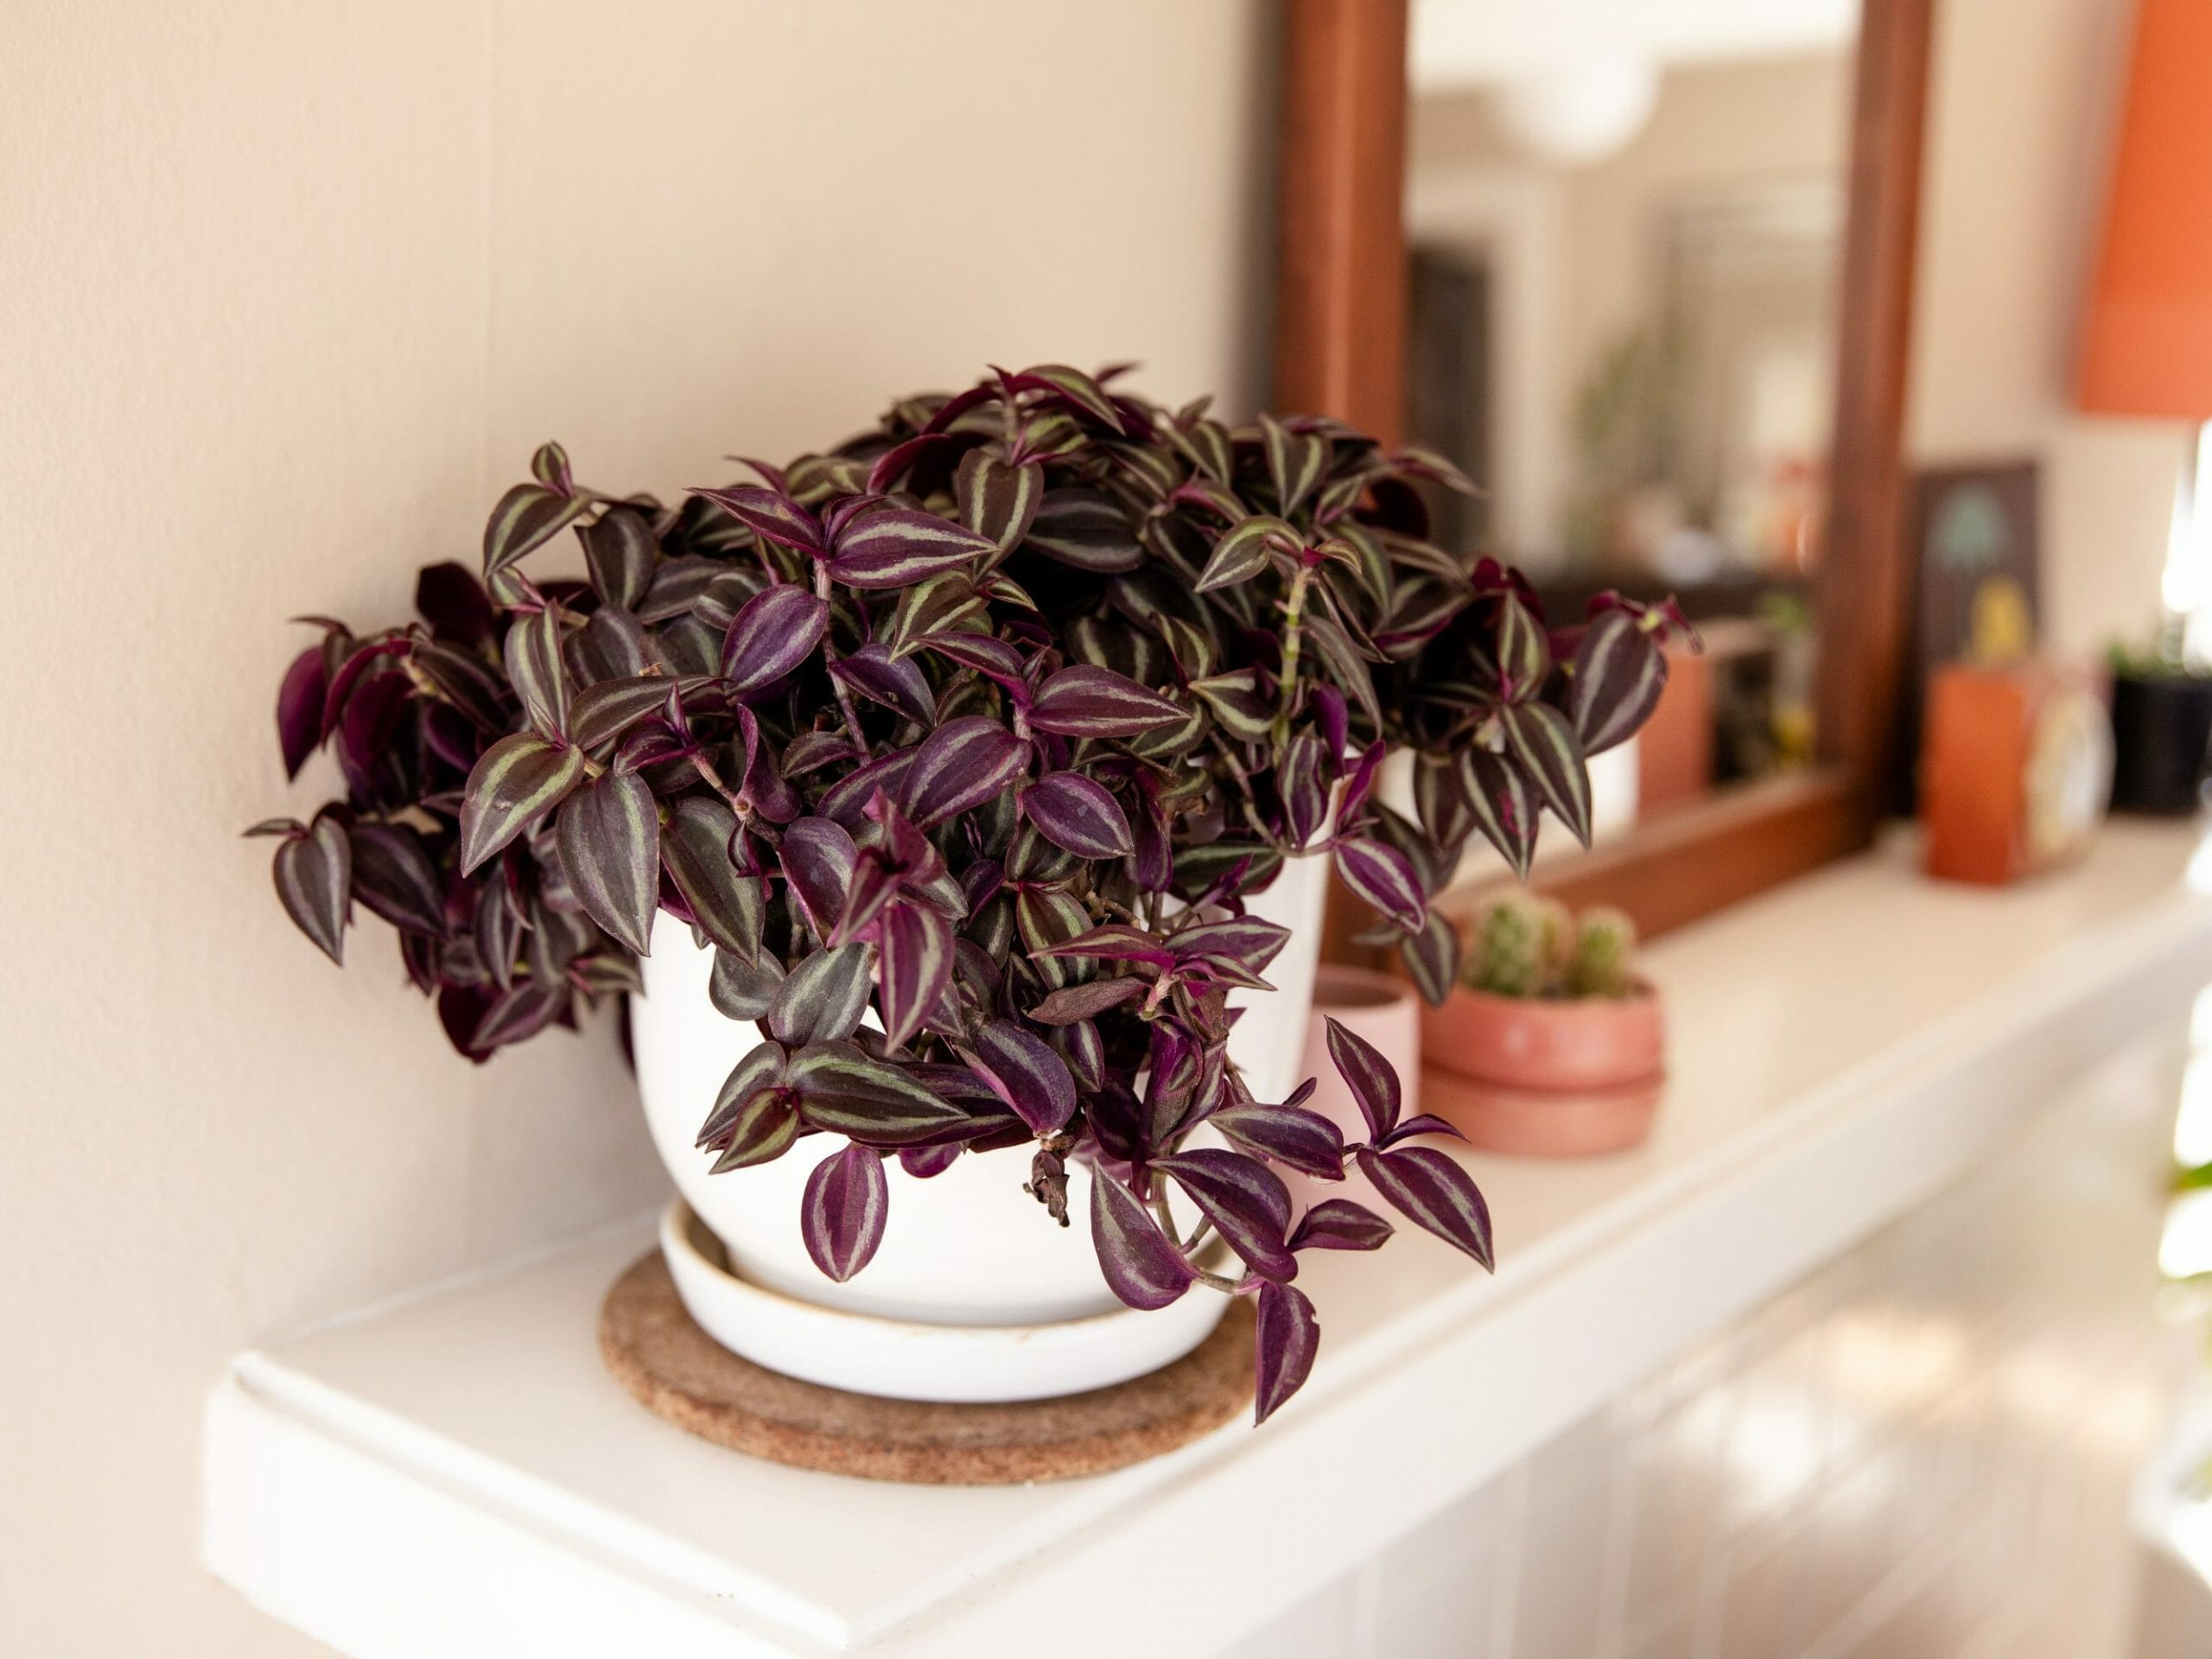 is wandering jew poisonous to cats